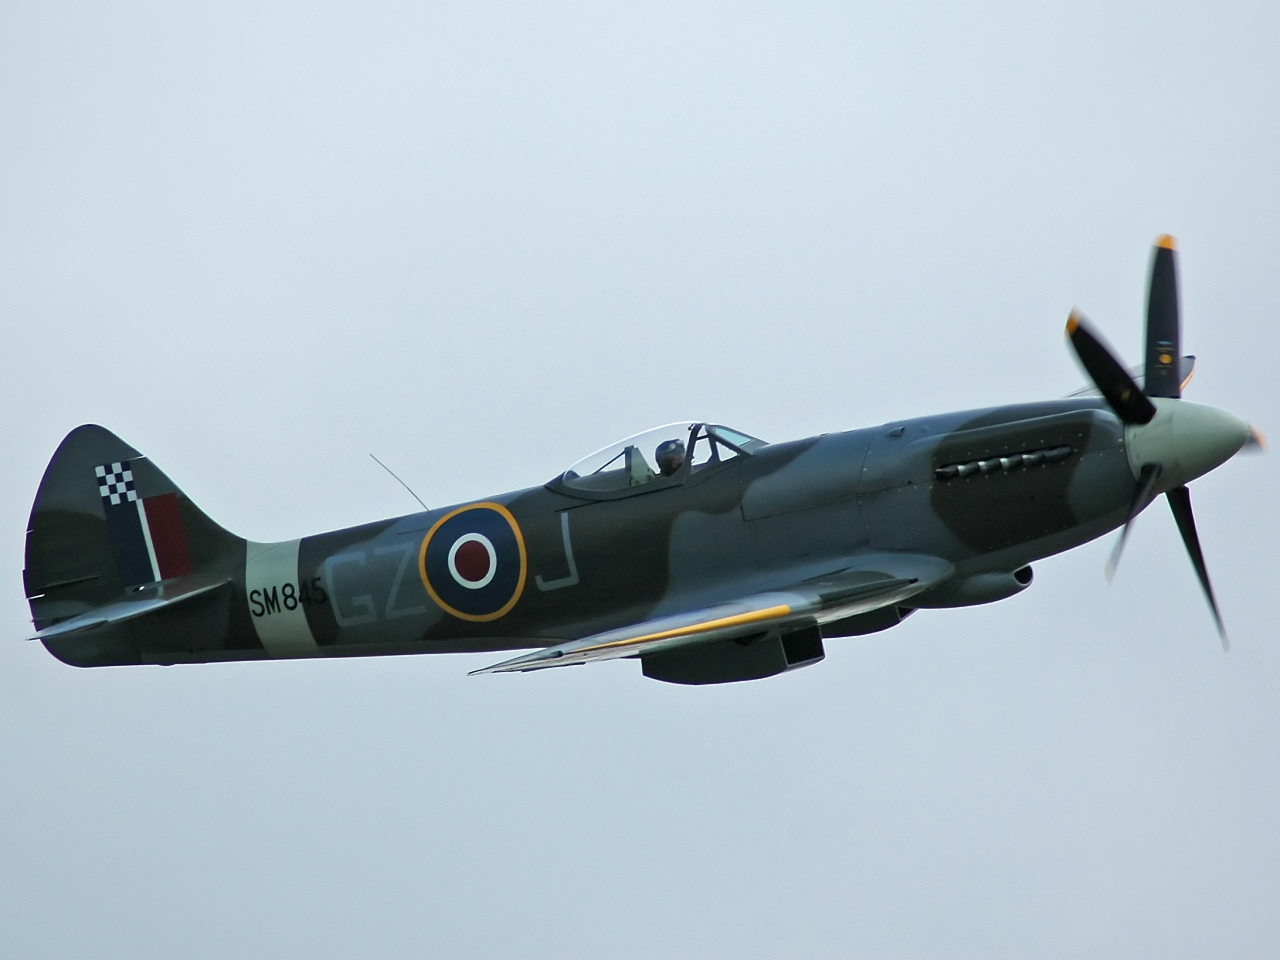 A Rolls Royce Griffon engined Mark XVIII Spitfire.